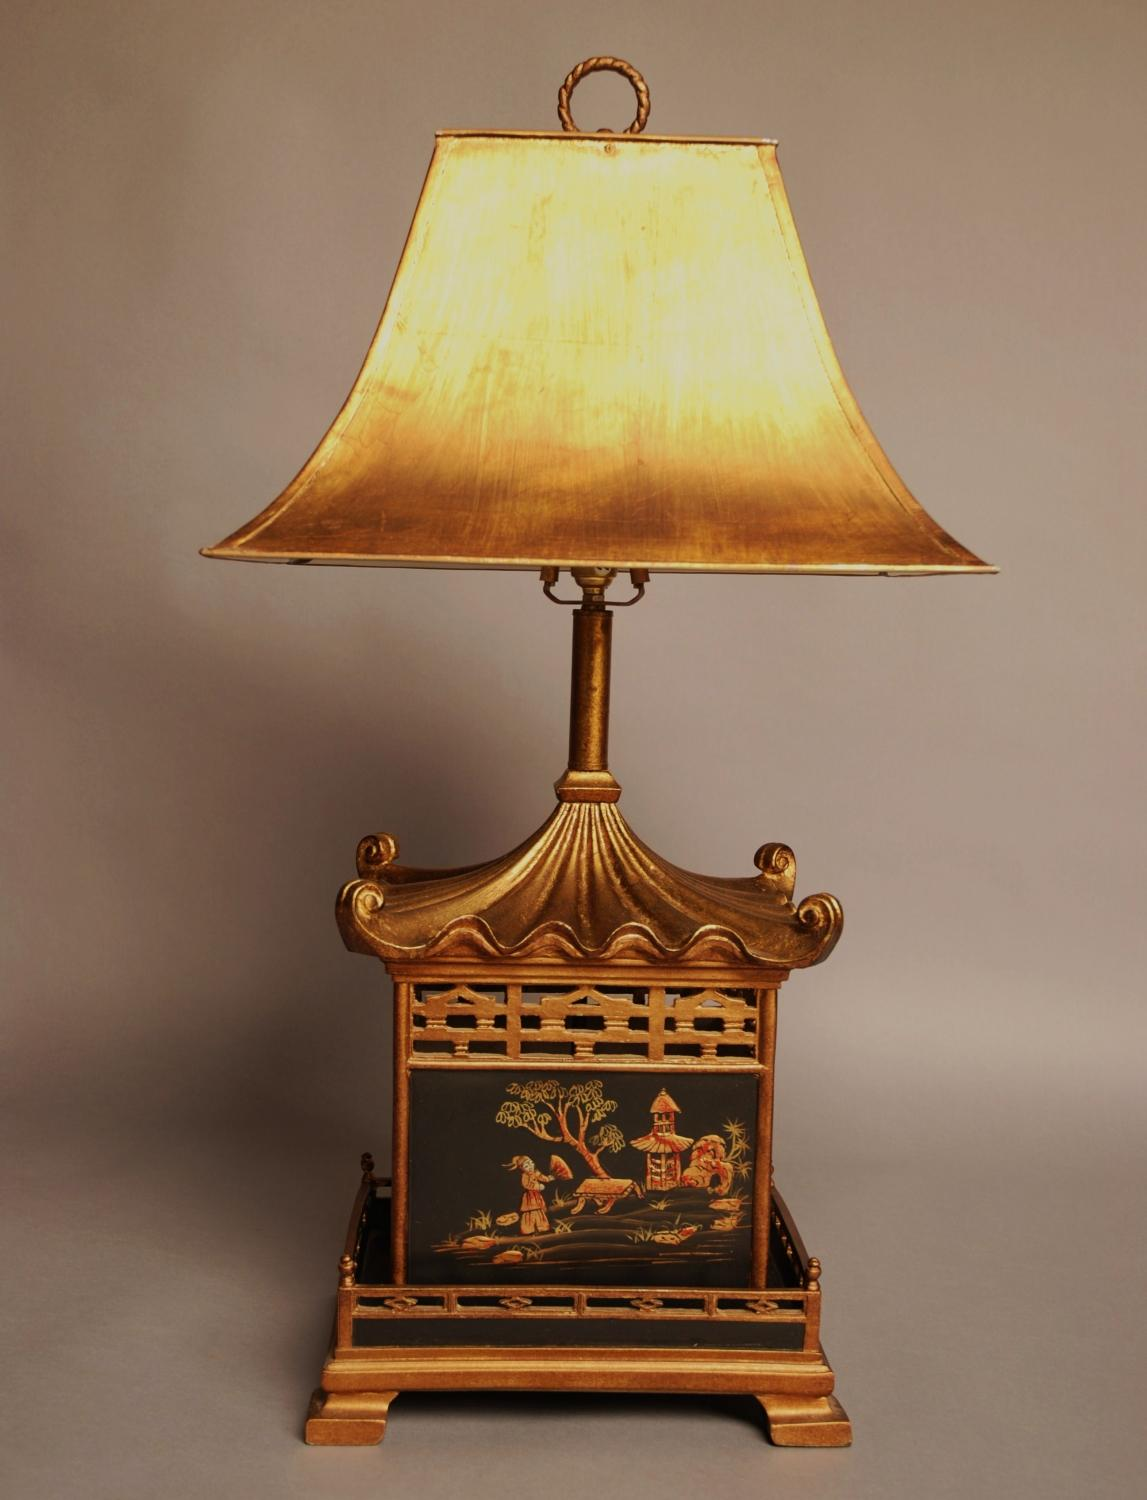 Decorative Chinoiserie style table lamp